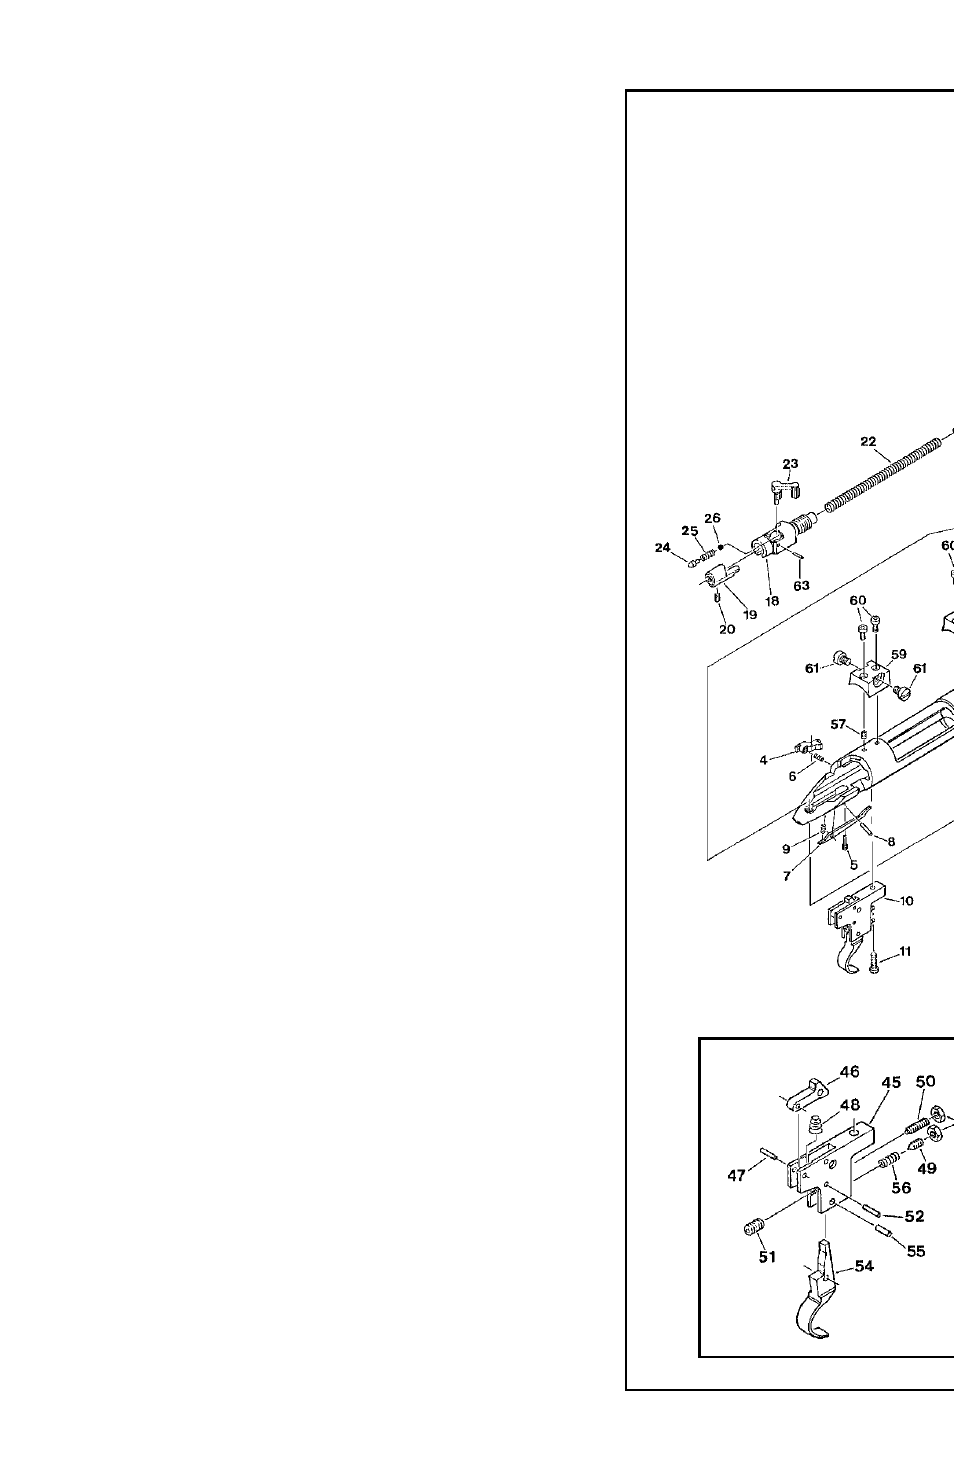 Parts List Exploded View